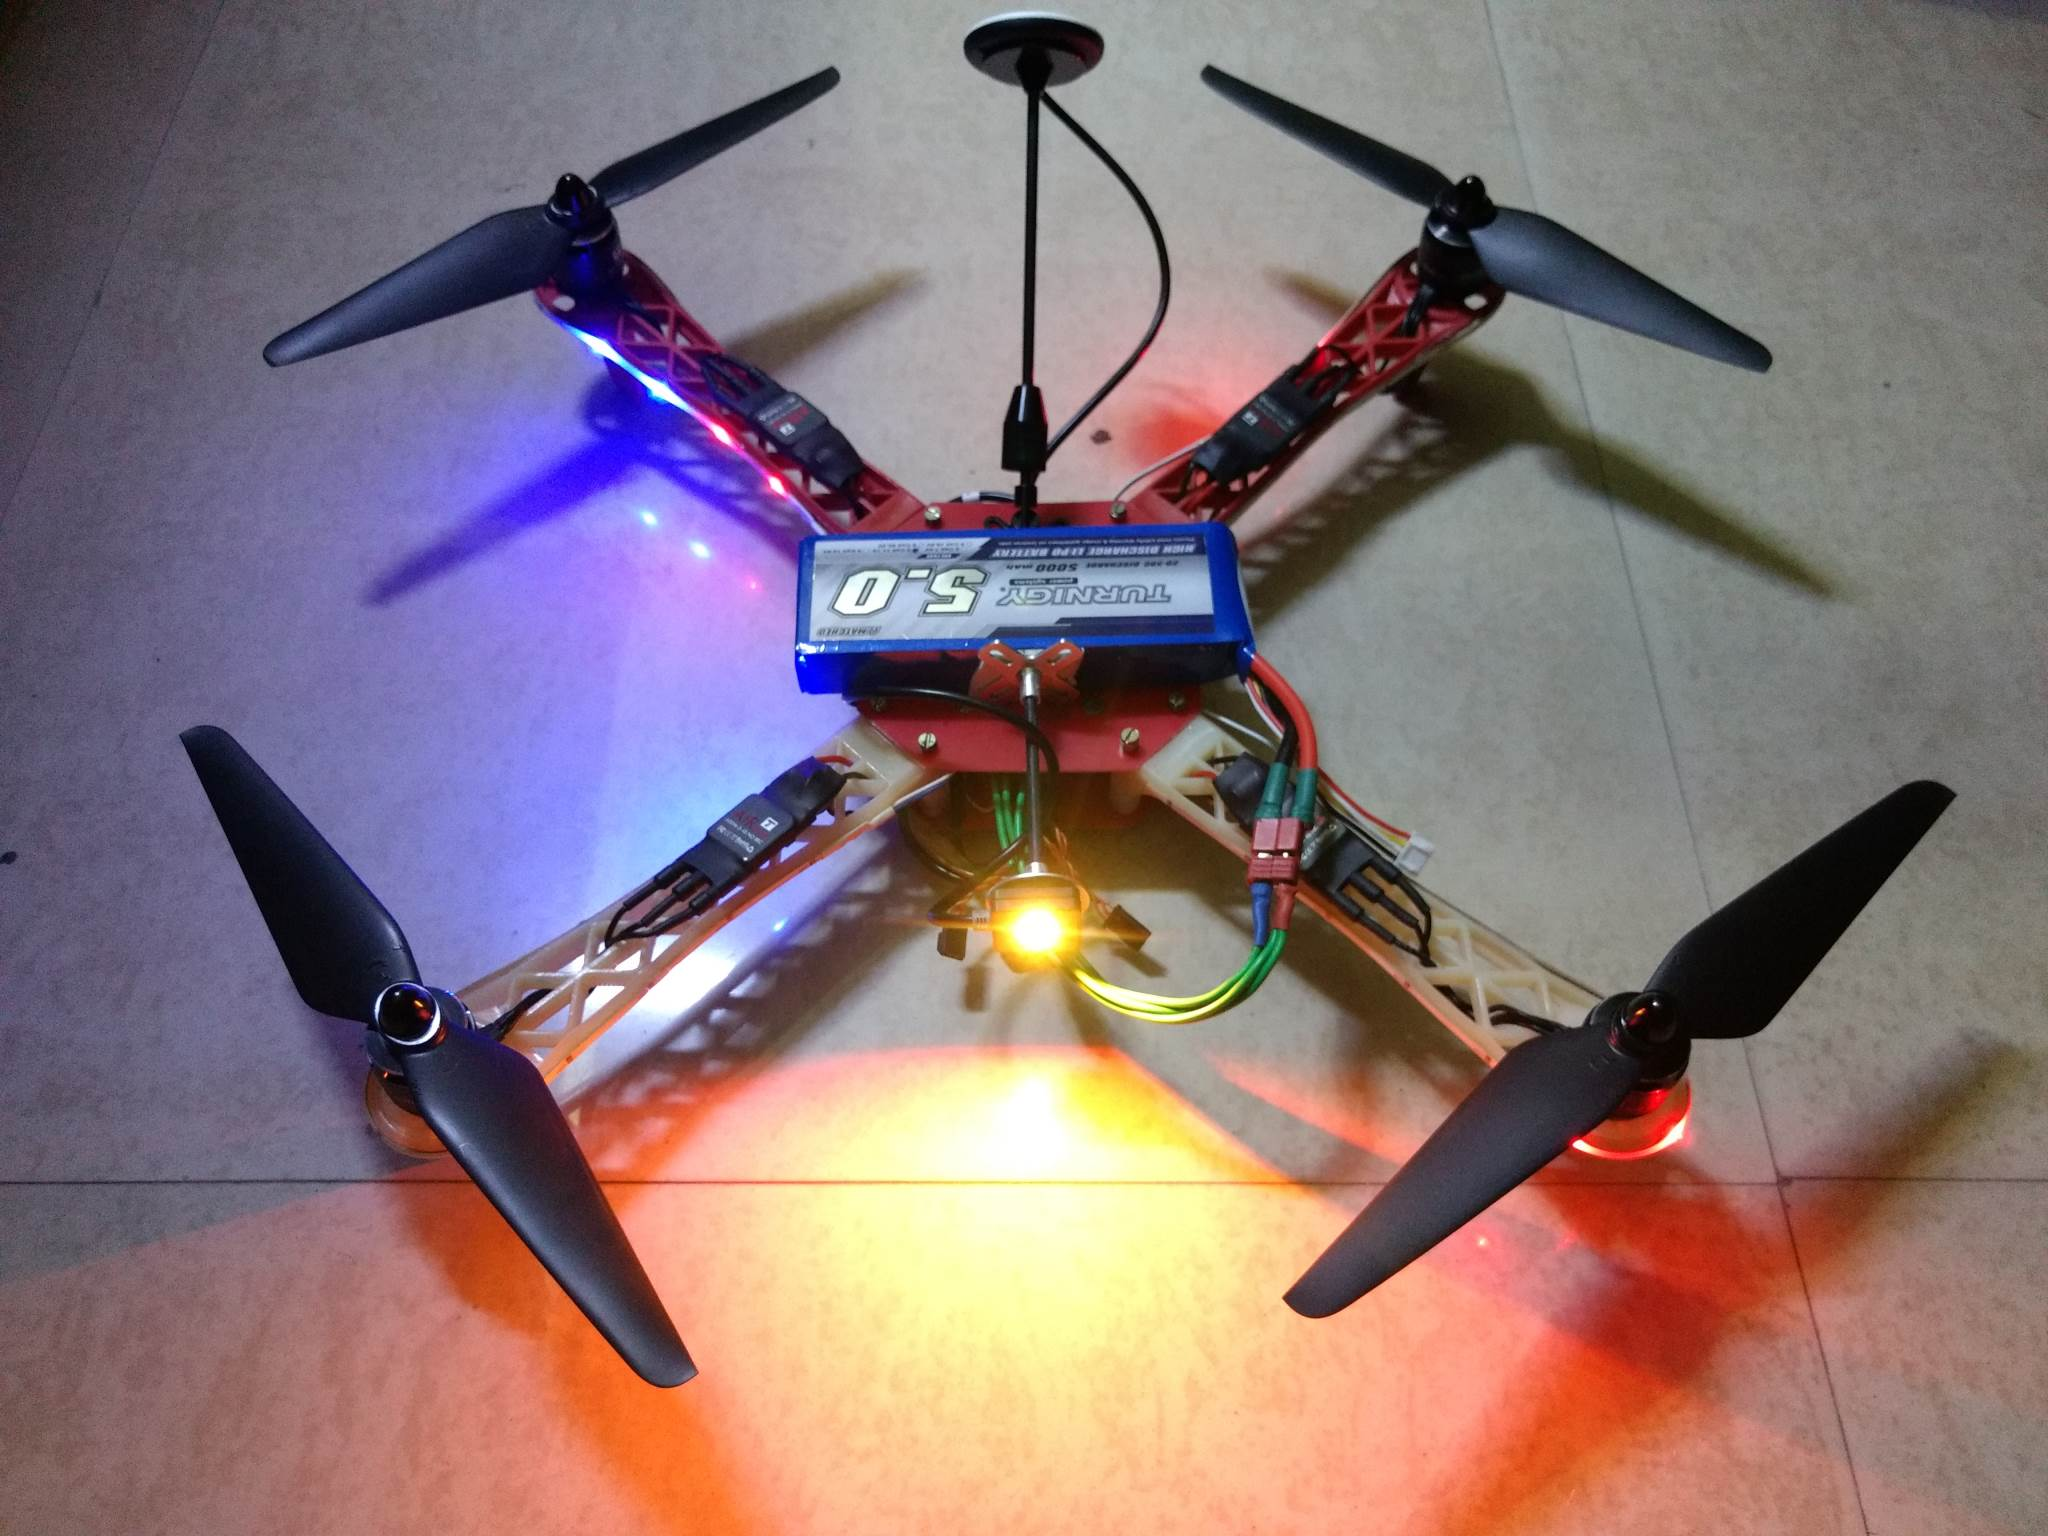 Calibration of Quadcopter